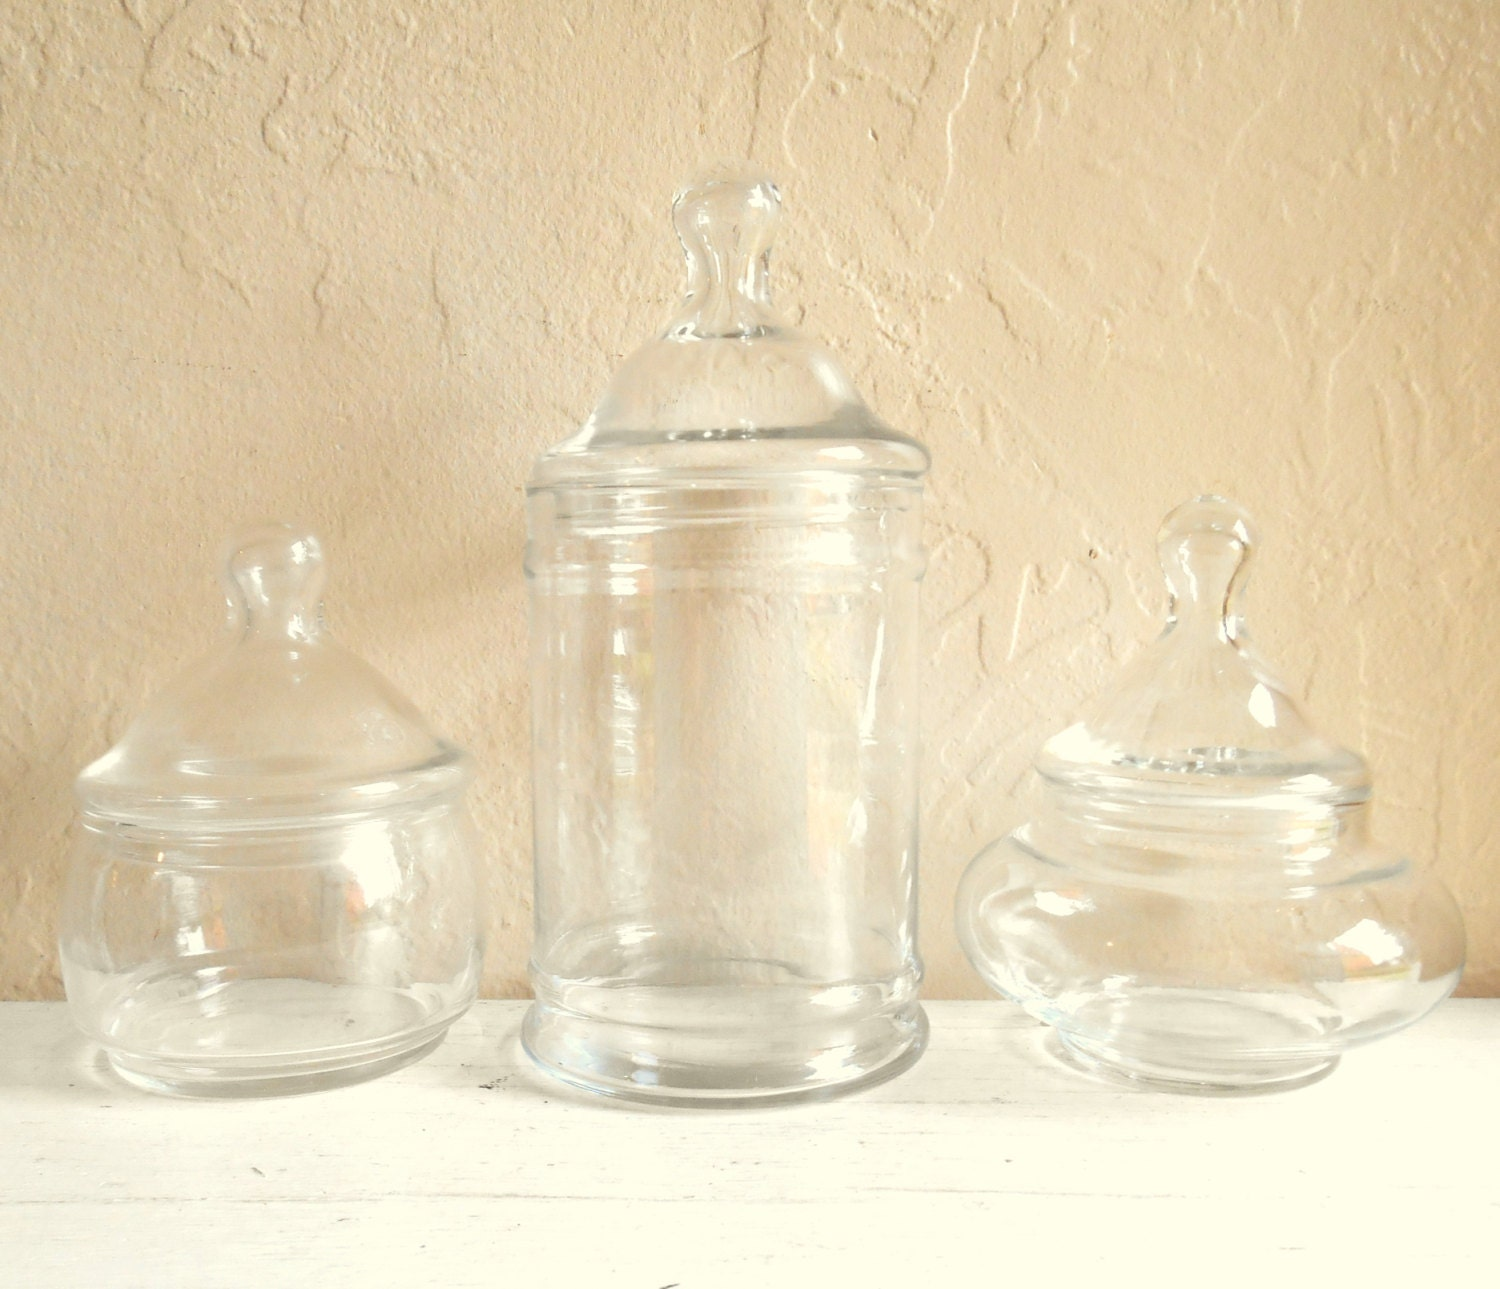 Trio of vintage glass apothecary jars with lids centerpiece